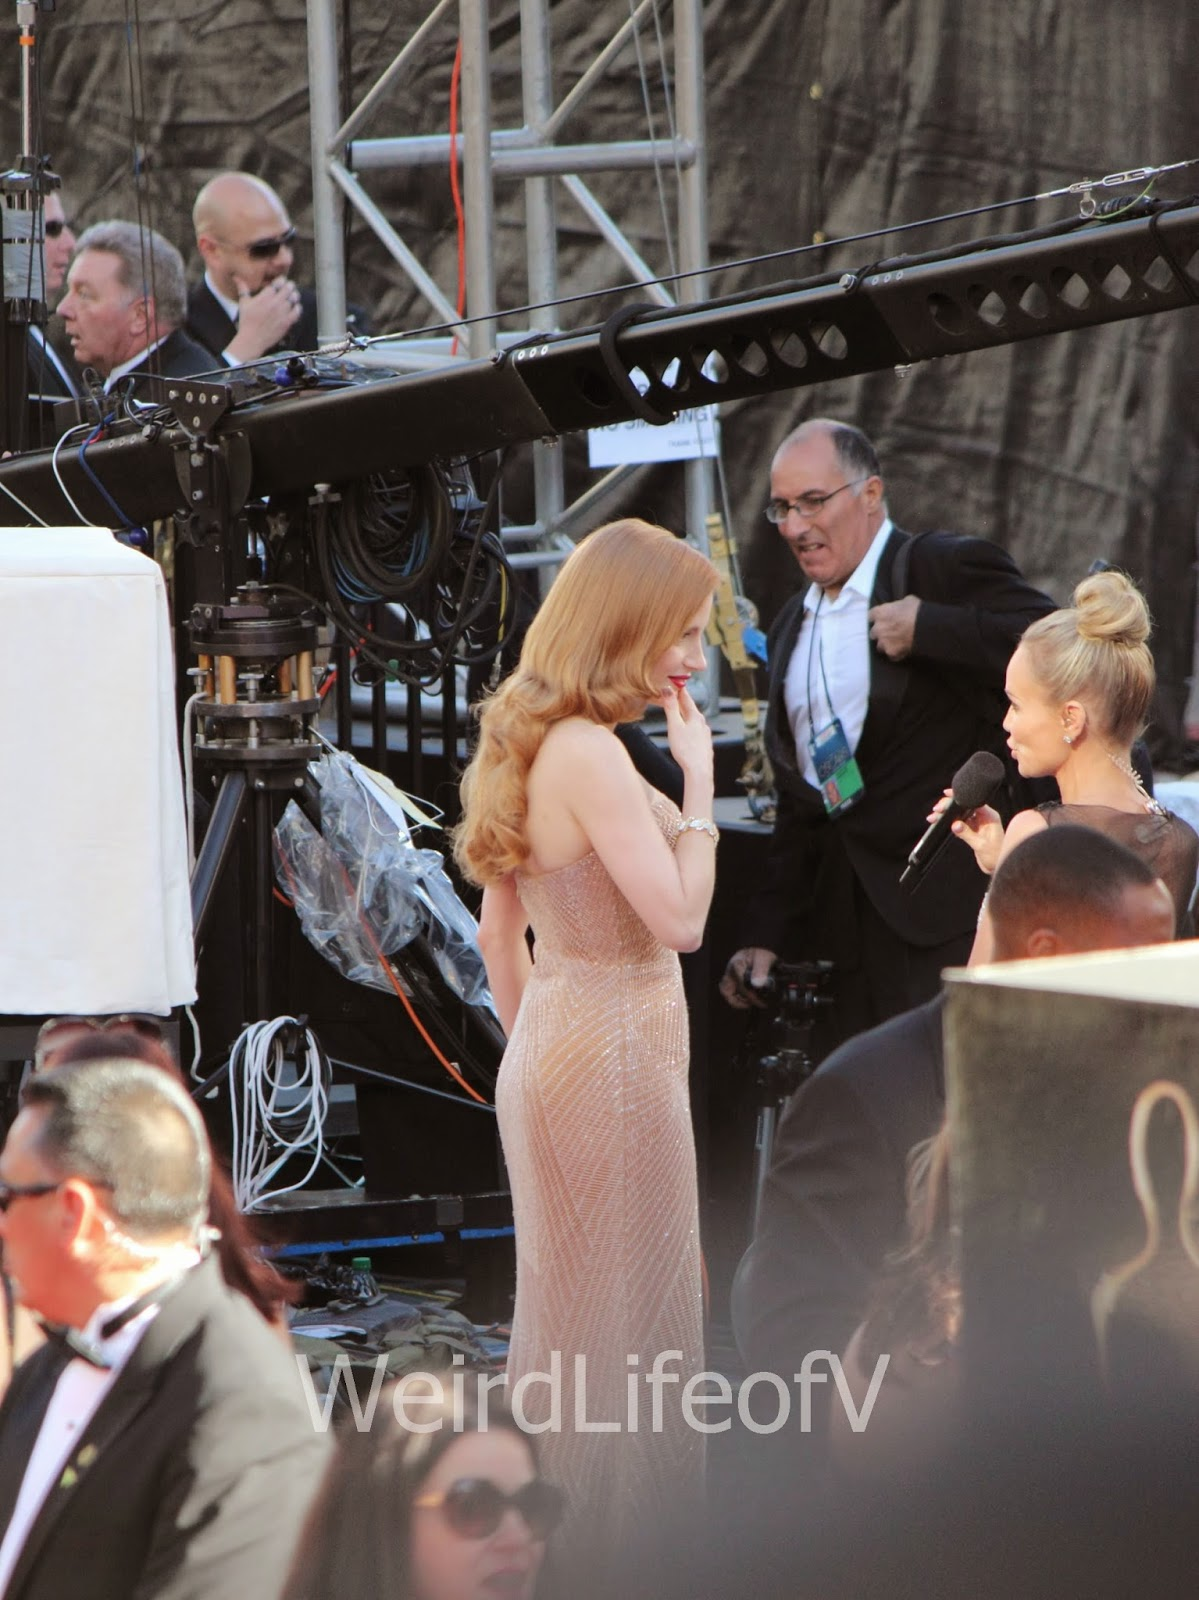 Jessica Chastain being interviewed by Kristin Chenoweth